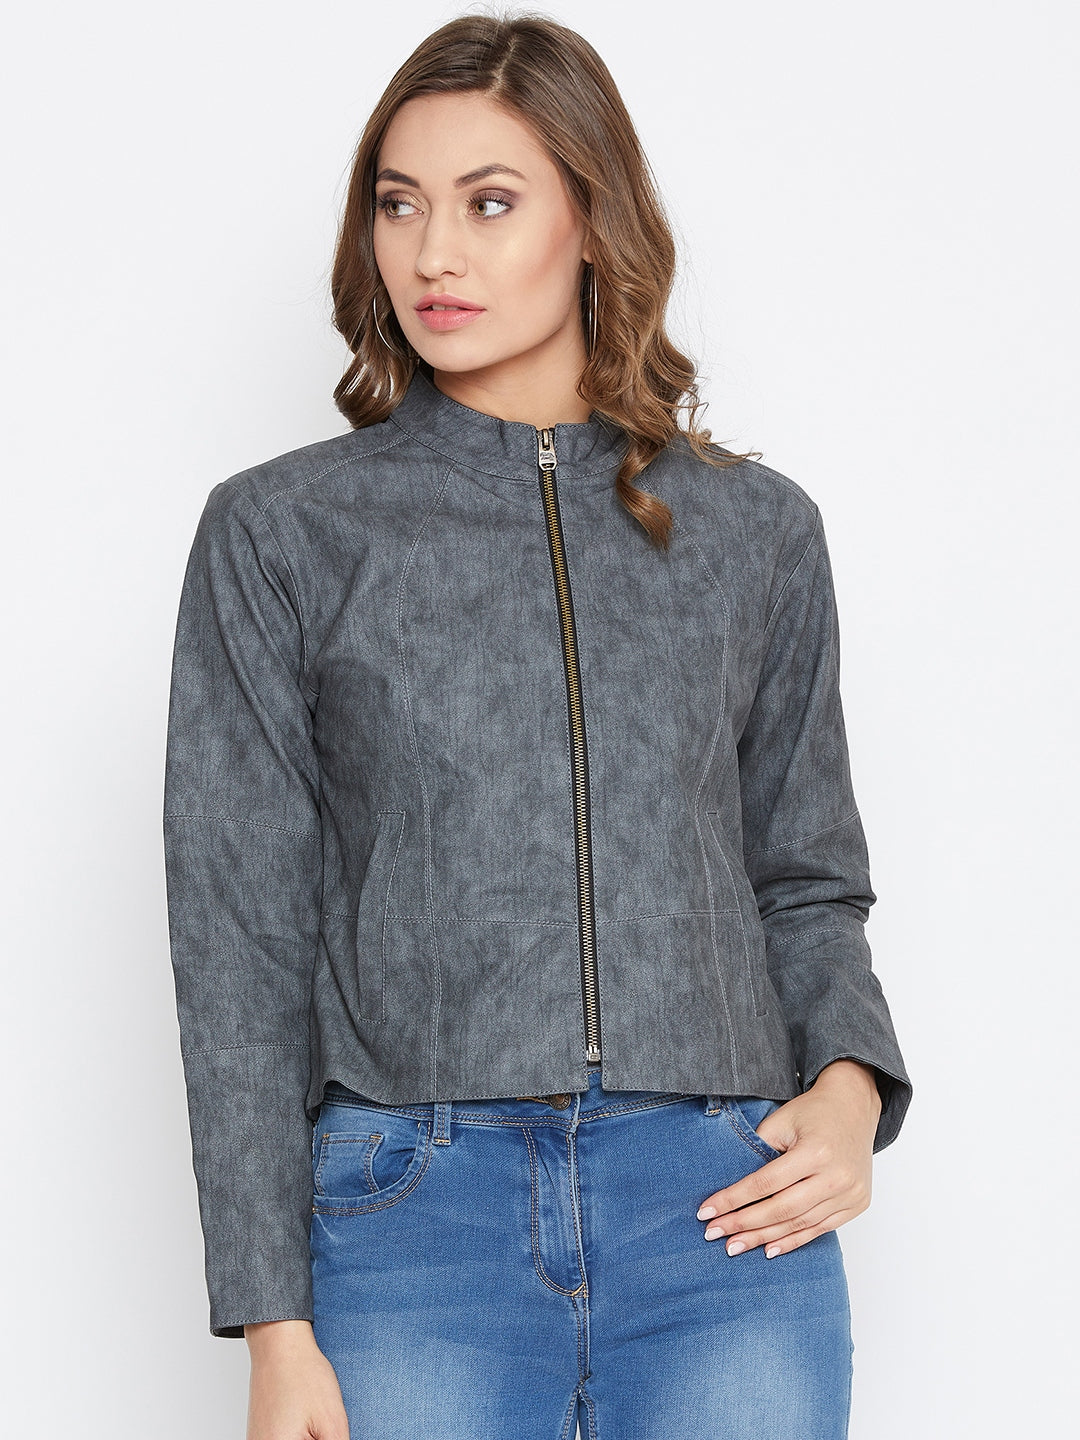 JUMP USA Women Grey Solid Casual Leather Jacket - JUMP USA